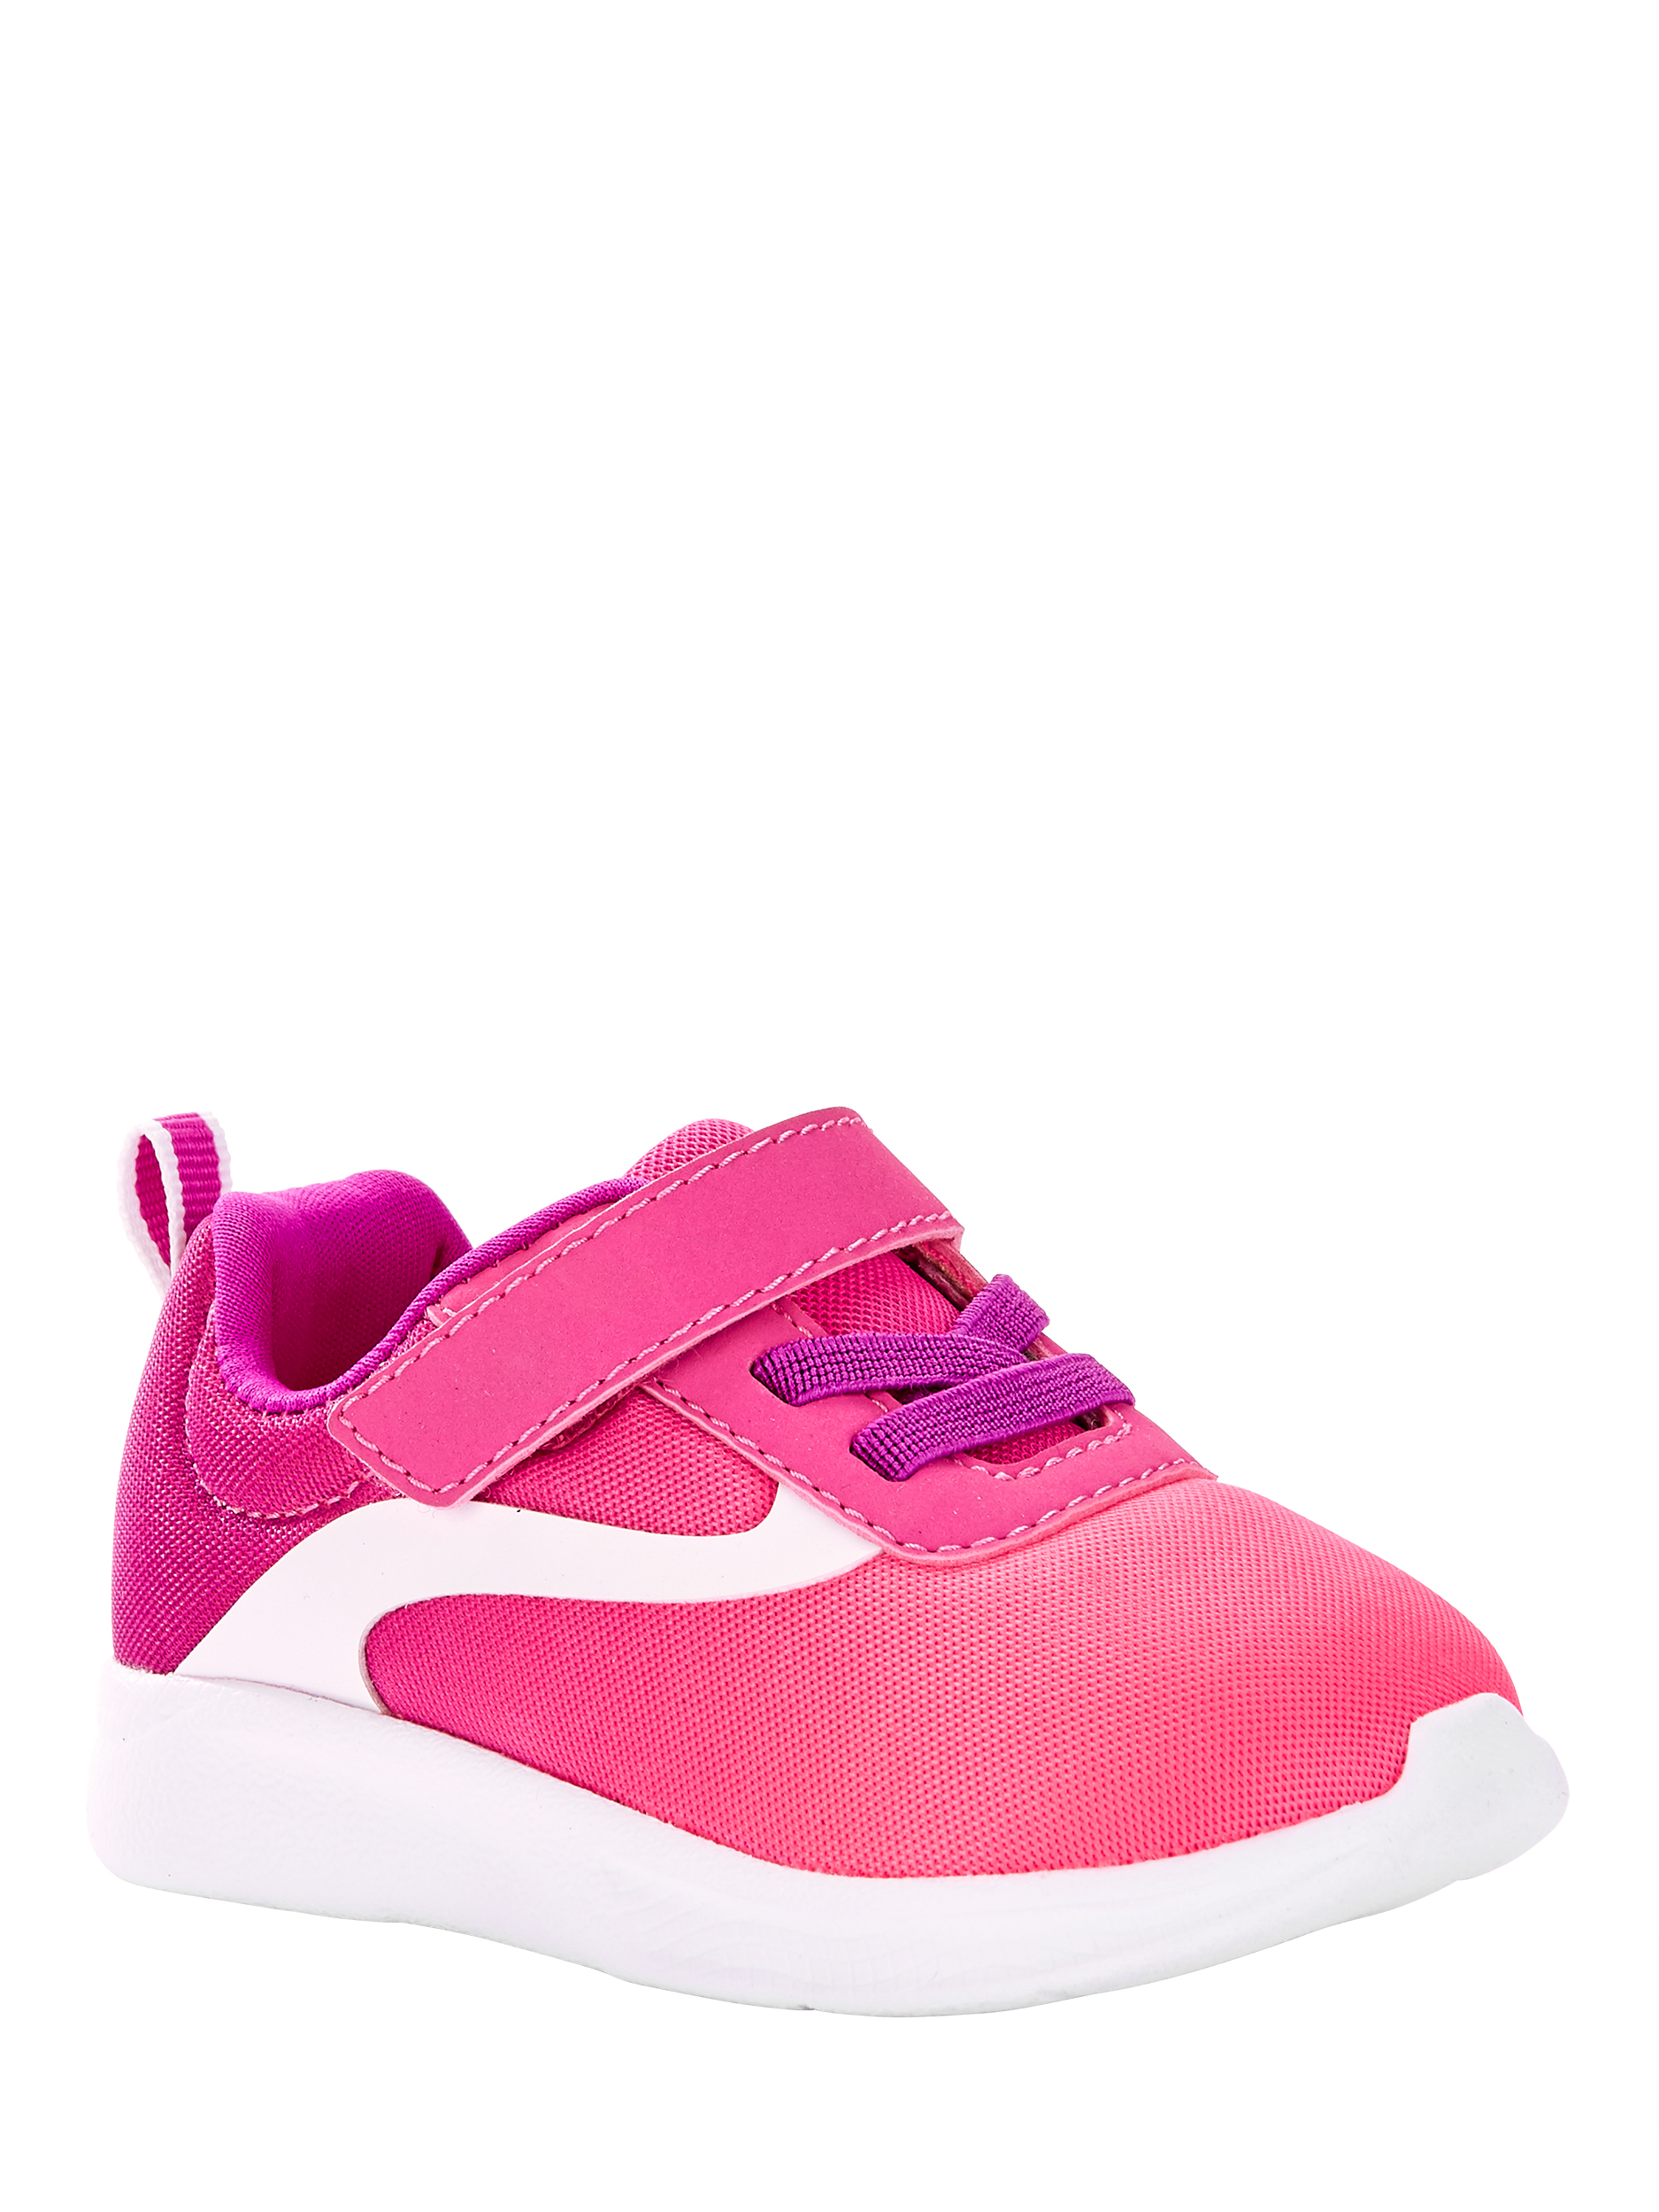 Details about  /Wonder Nation Girls Youth Casual Ruffle Slip On Sneaker Shoes Size 1.2.3.4.5